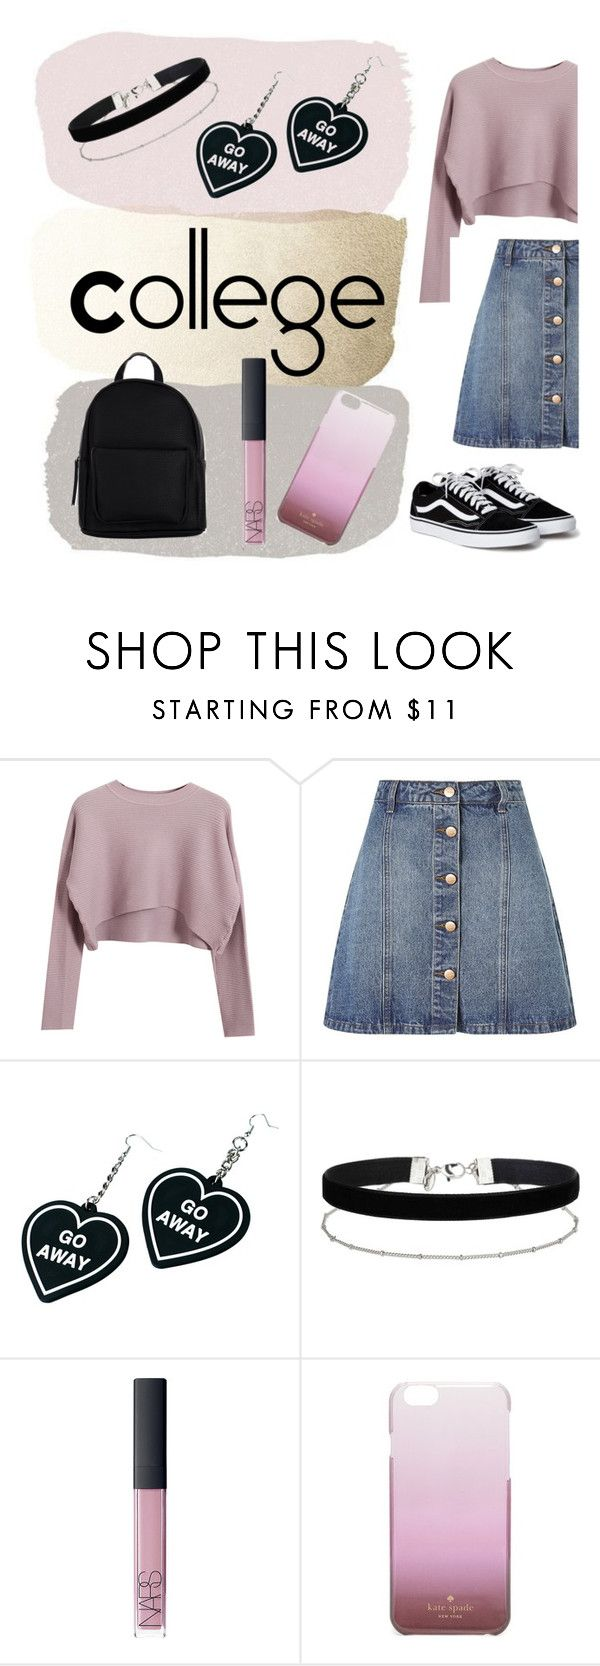 """""""College"""" by americanbarbies on Polyvore featuring Chicnova Fashion, Anita & Green, Witch Worldwide, Miss Selfridge, NARS Cosmetics, Kate Spade and New Look"""